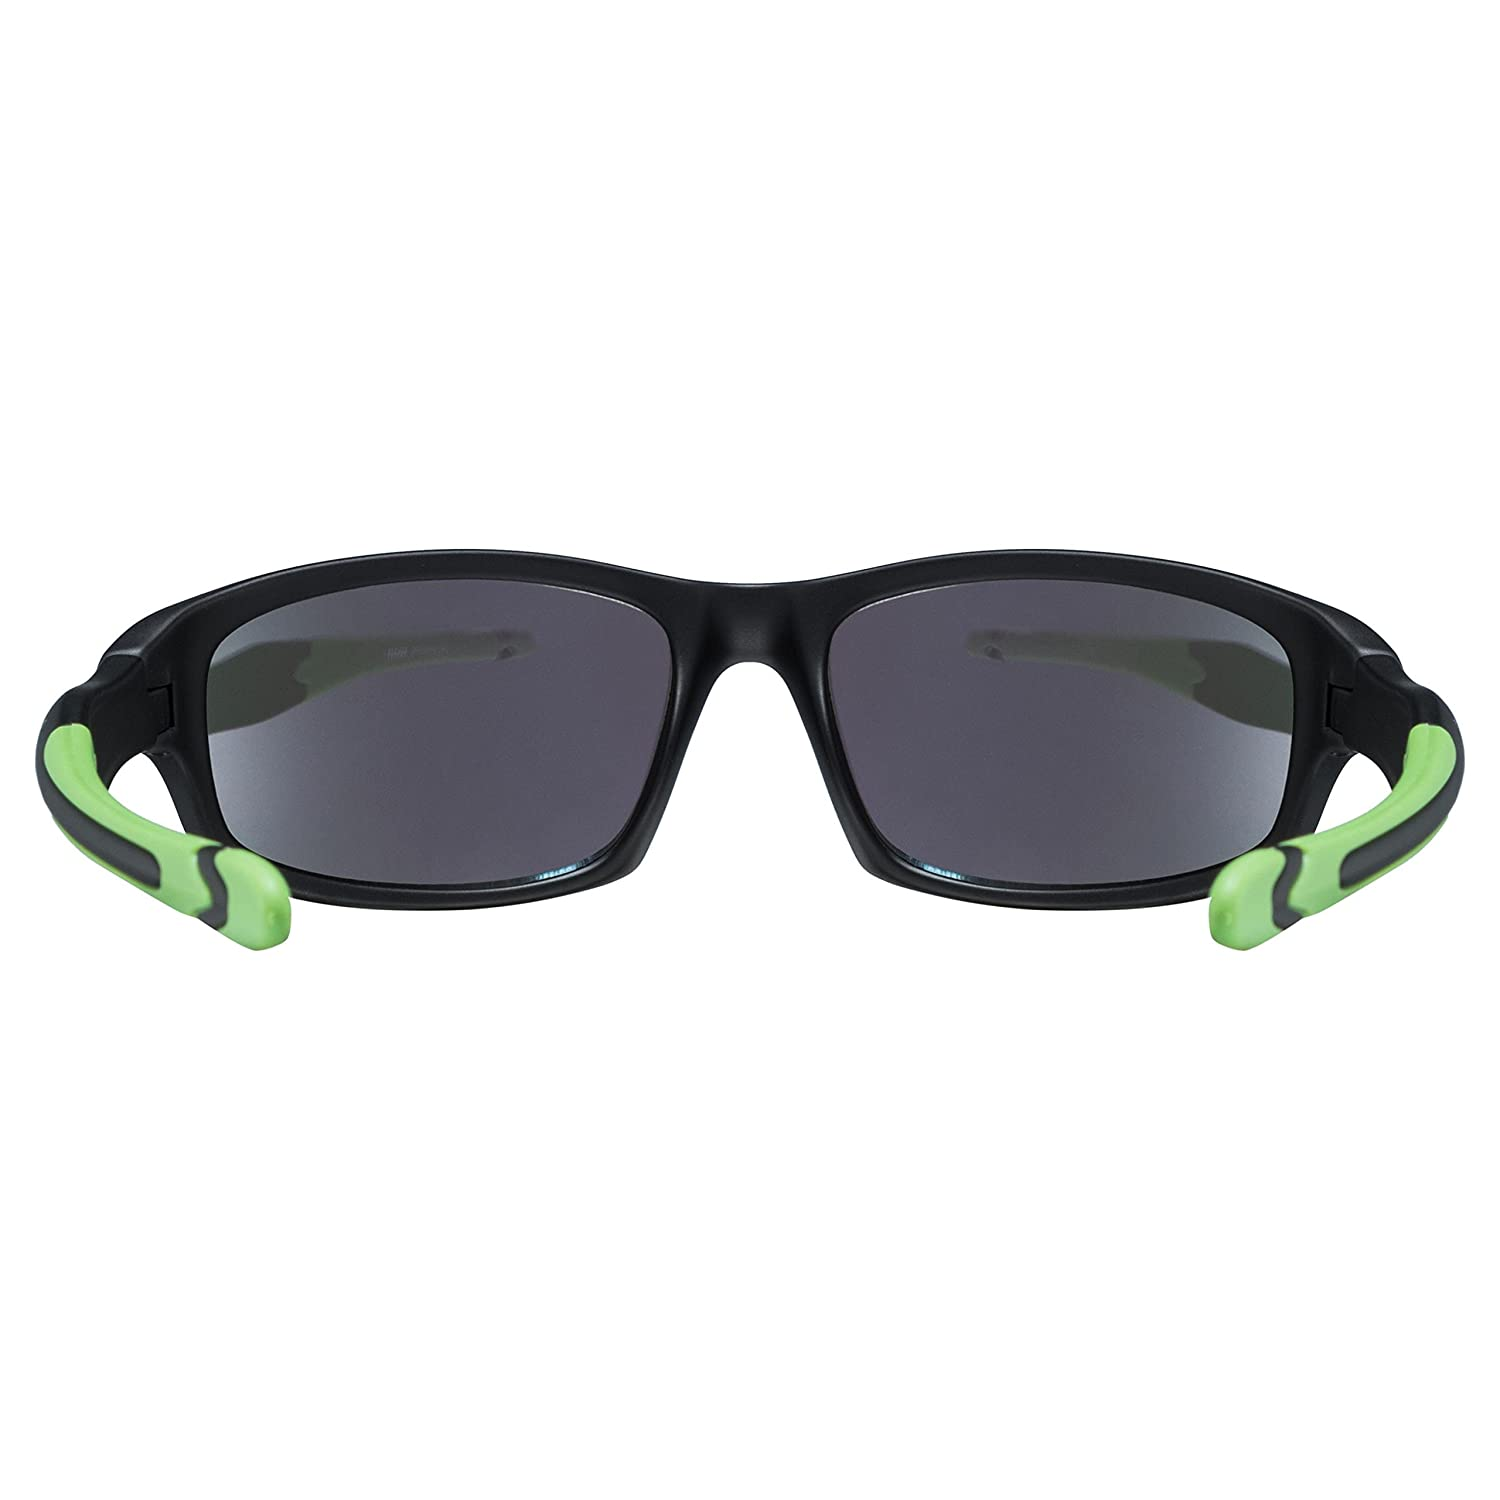 81a2f34a48707e Amazon.com  Uvex Sportstyle 507 Kids Youth Sunglasses - 5338662716 (black  mat green mirror green (S3))  Sports   Outdoors